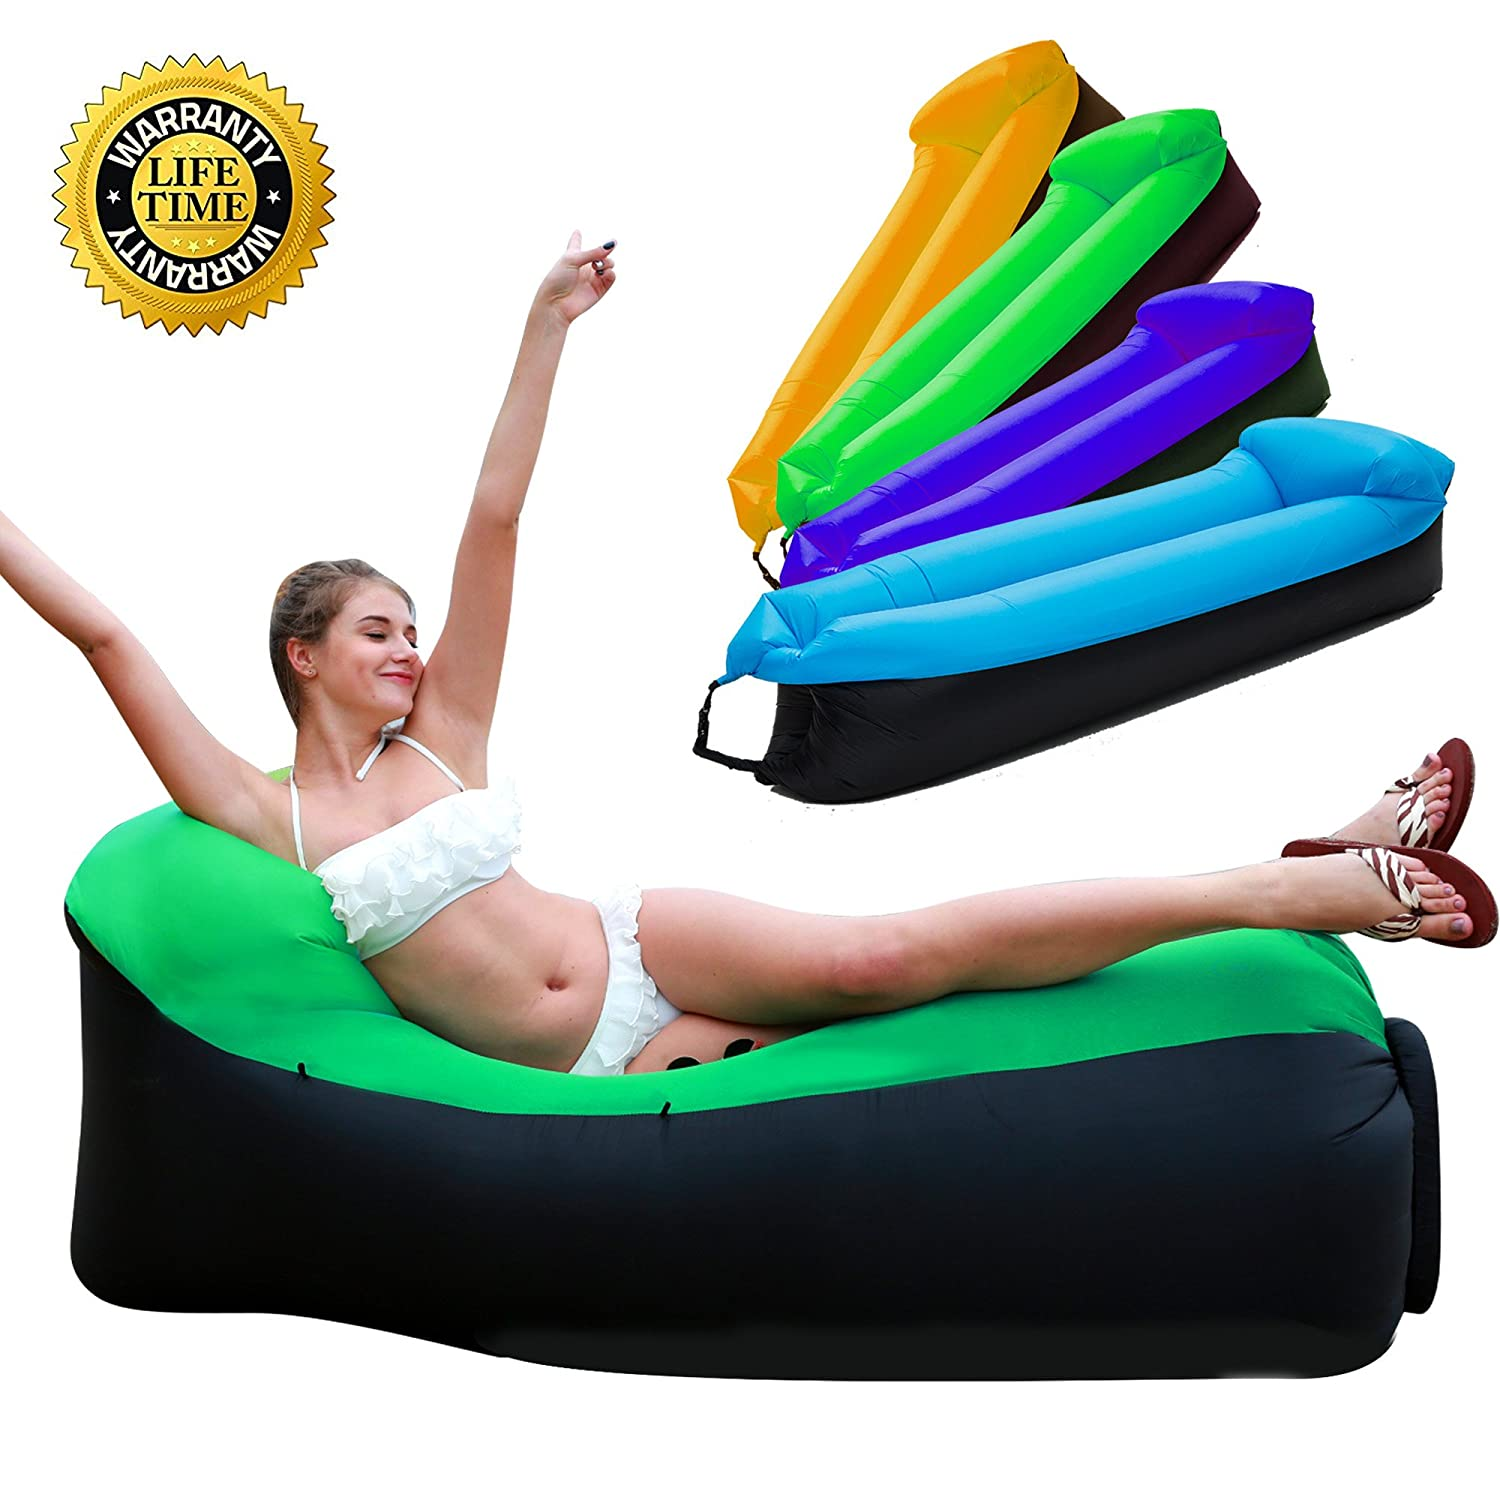 HAKE Inflatable Lounger Inflatable Couch Air Lounger Air Couch Water  Resistant Inflatable Hammock With Travel Bag For Outdoor And Indoor Use For  Camping, ...